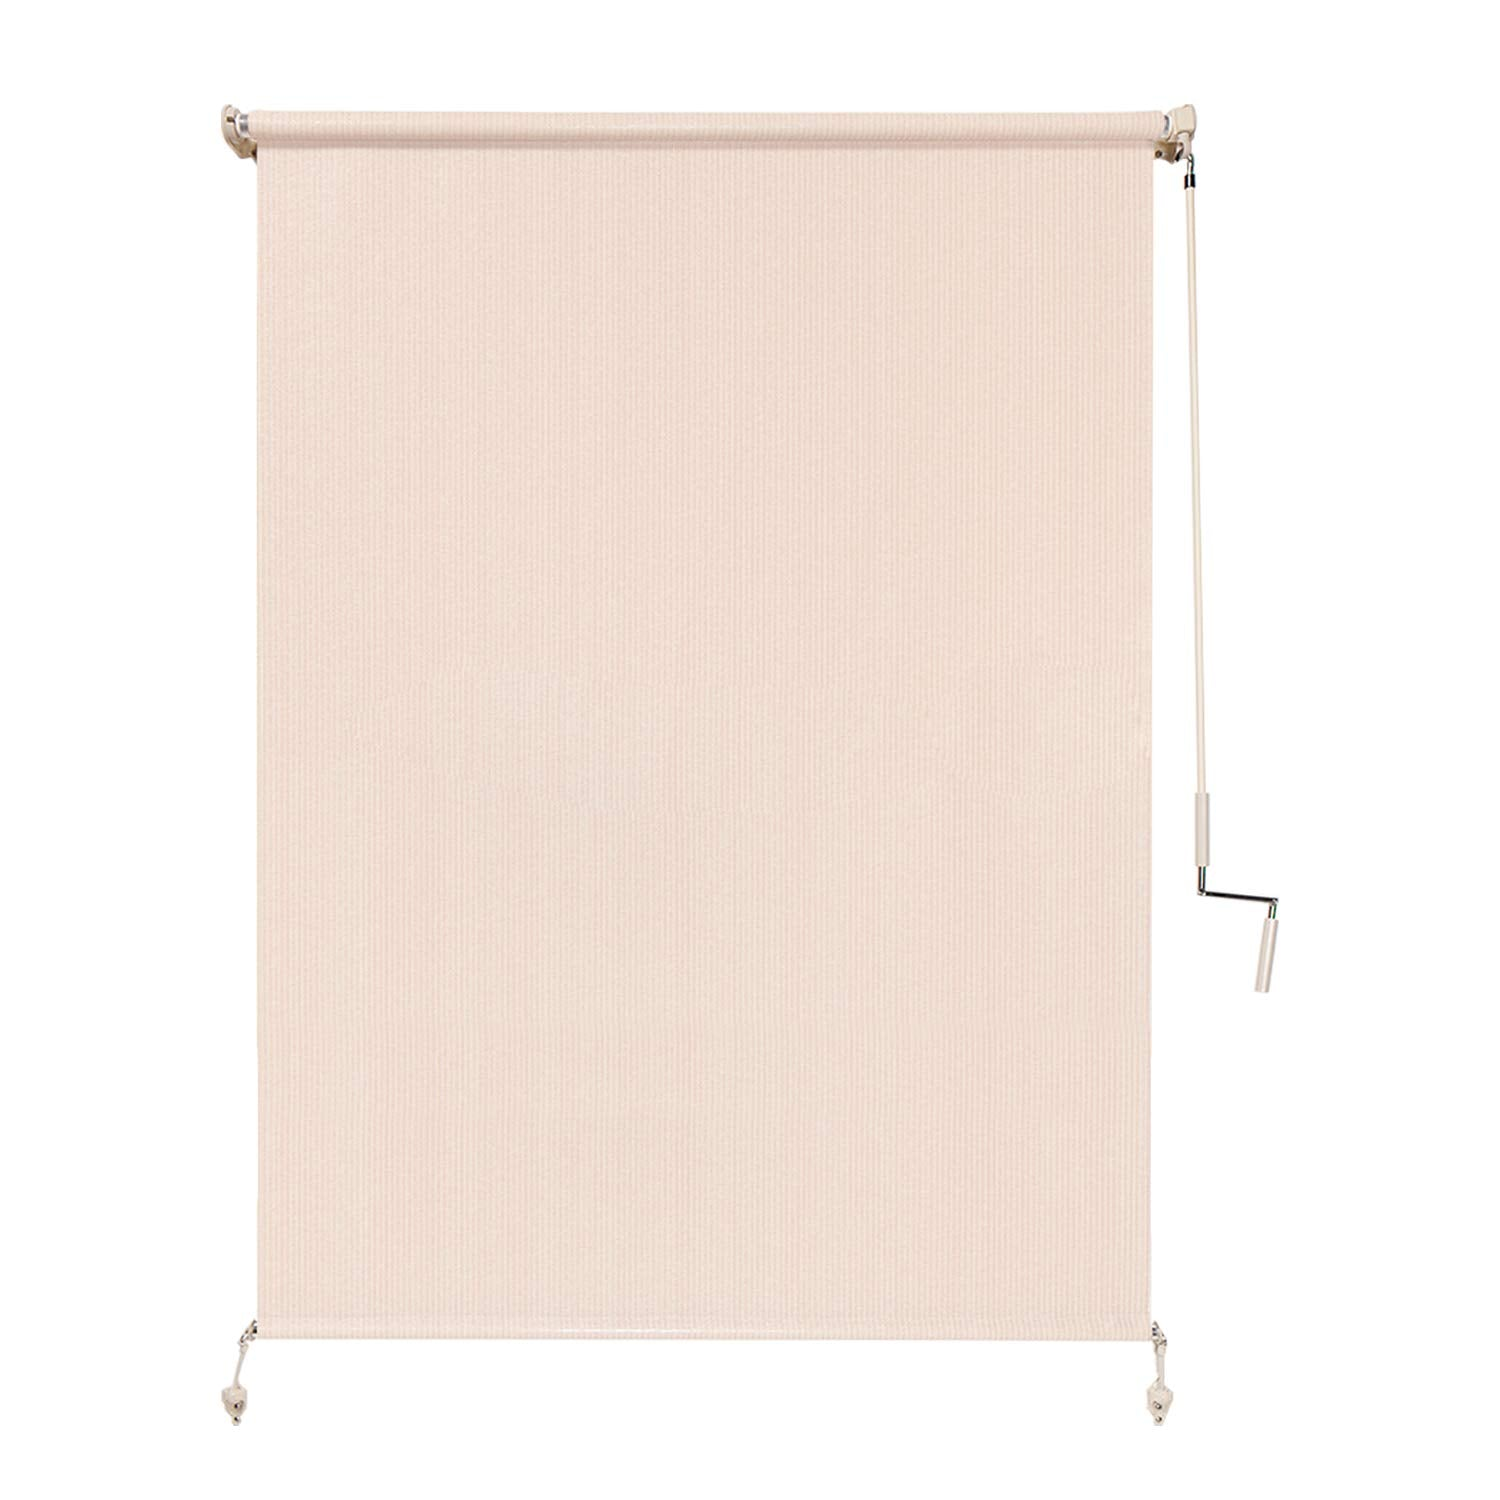 Coolaroo Wand-Operated Roller Shade, (4' x 8'), Pebble